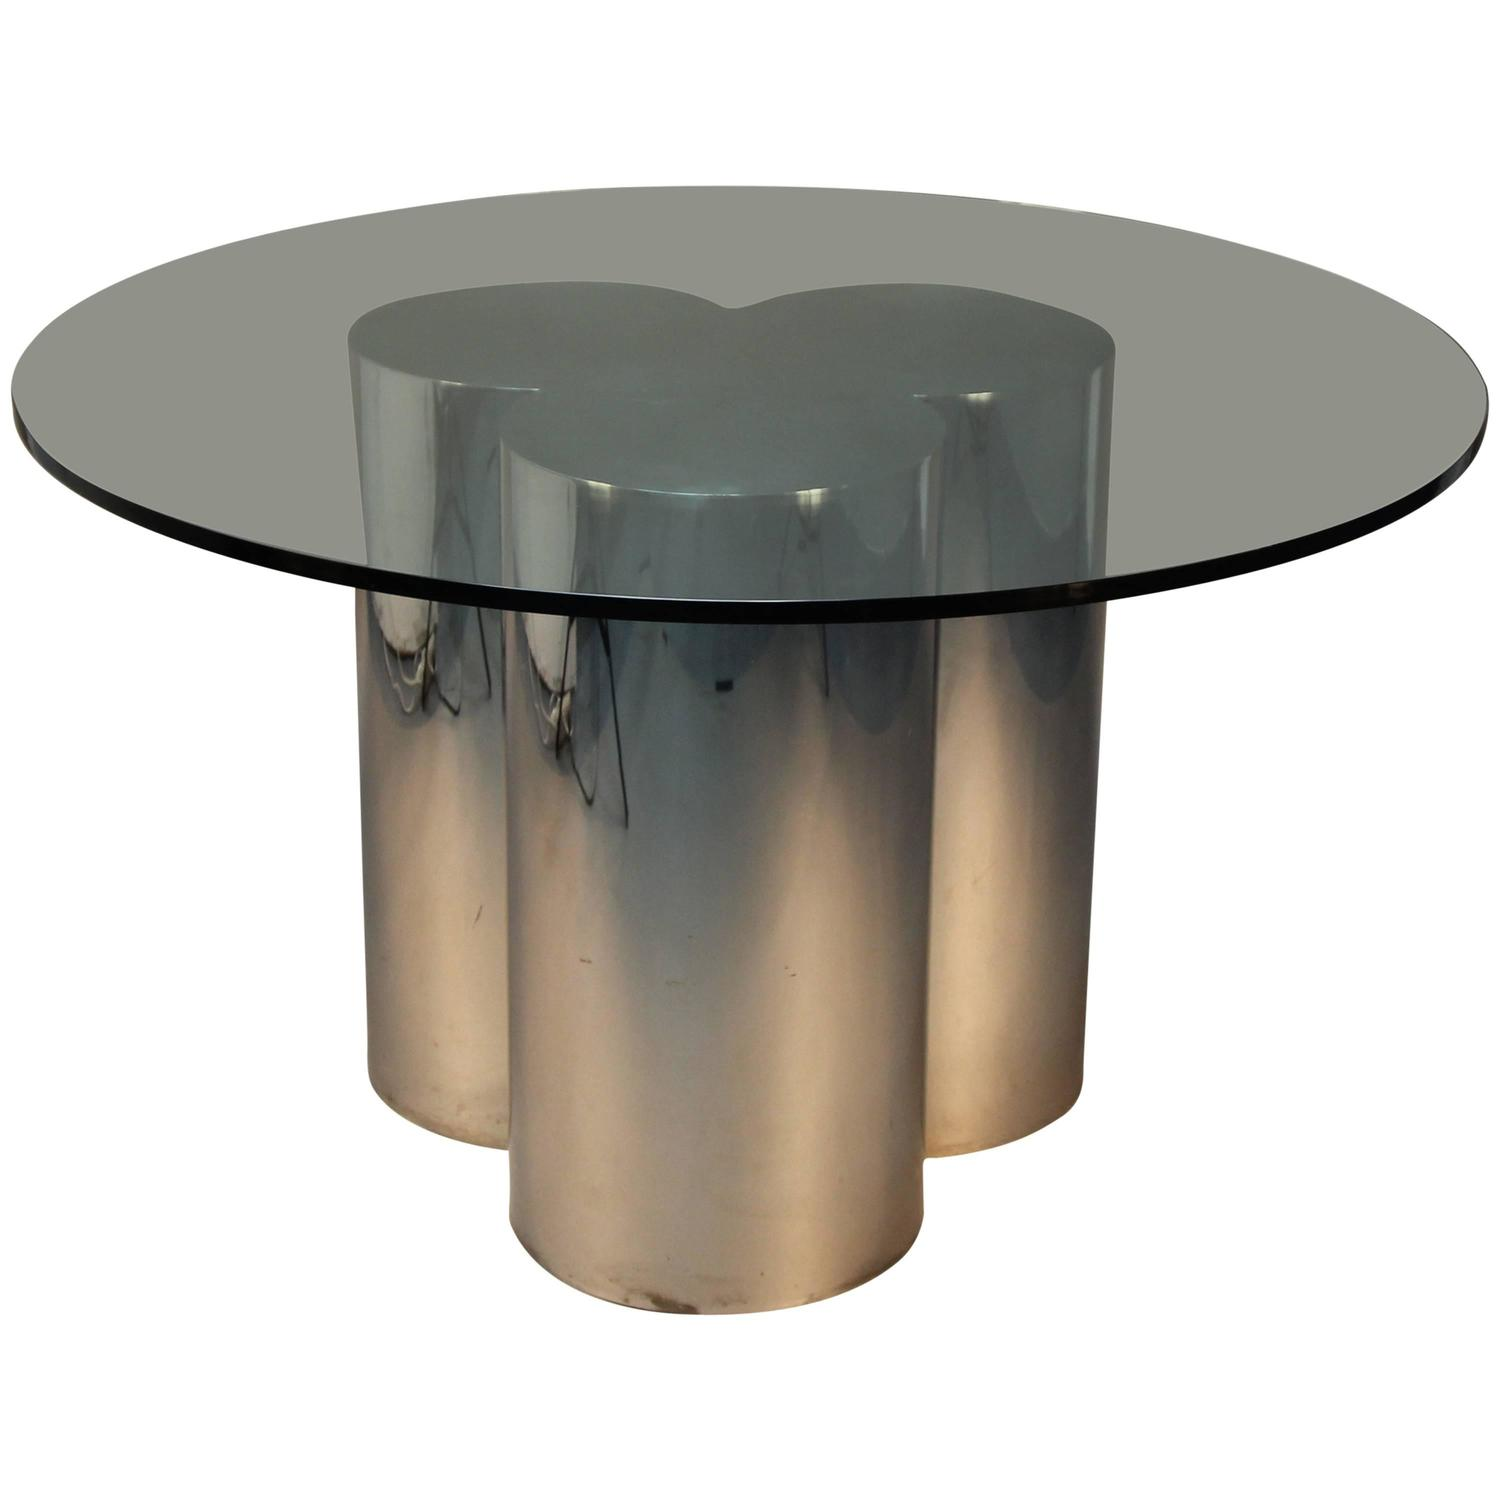 Jere Chrome Trefoil Pedestal or Table Base with Glass Top at 1stdibs